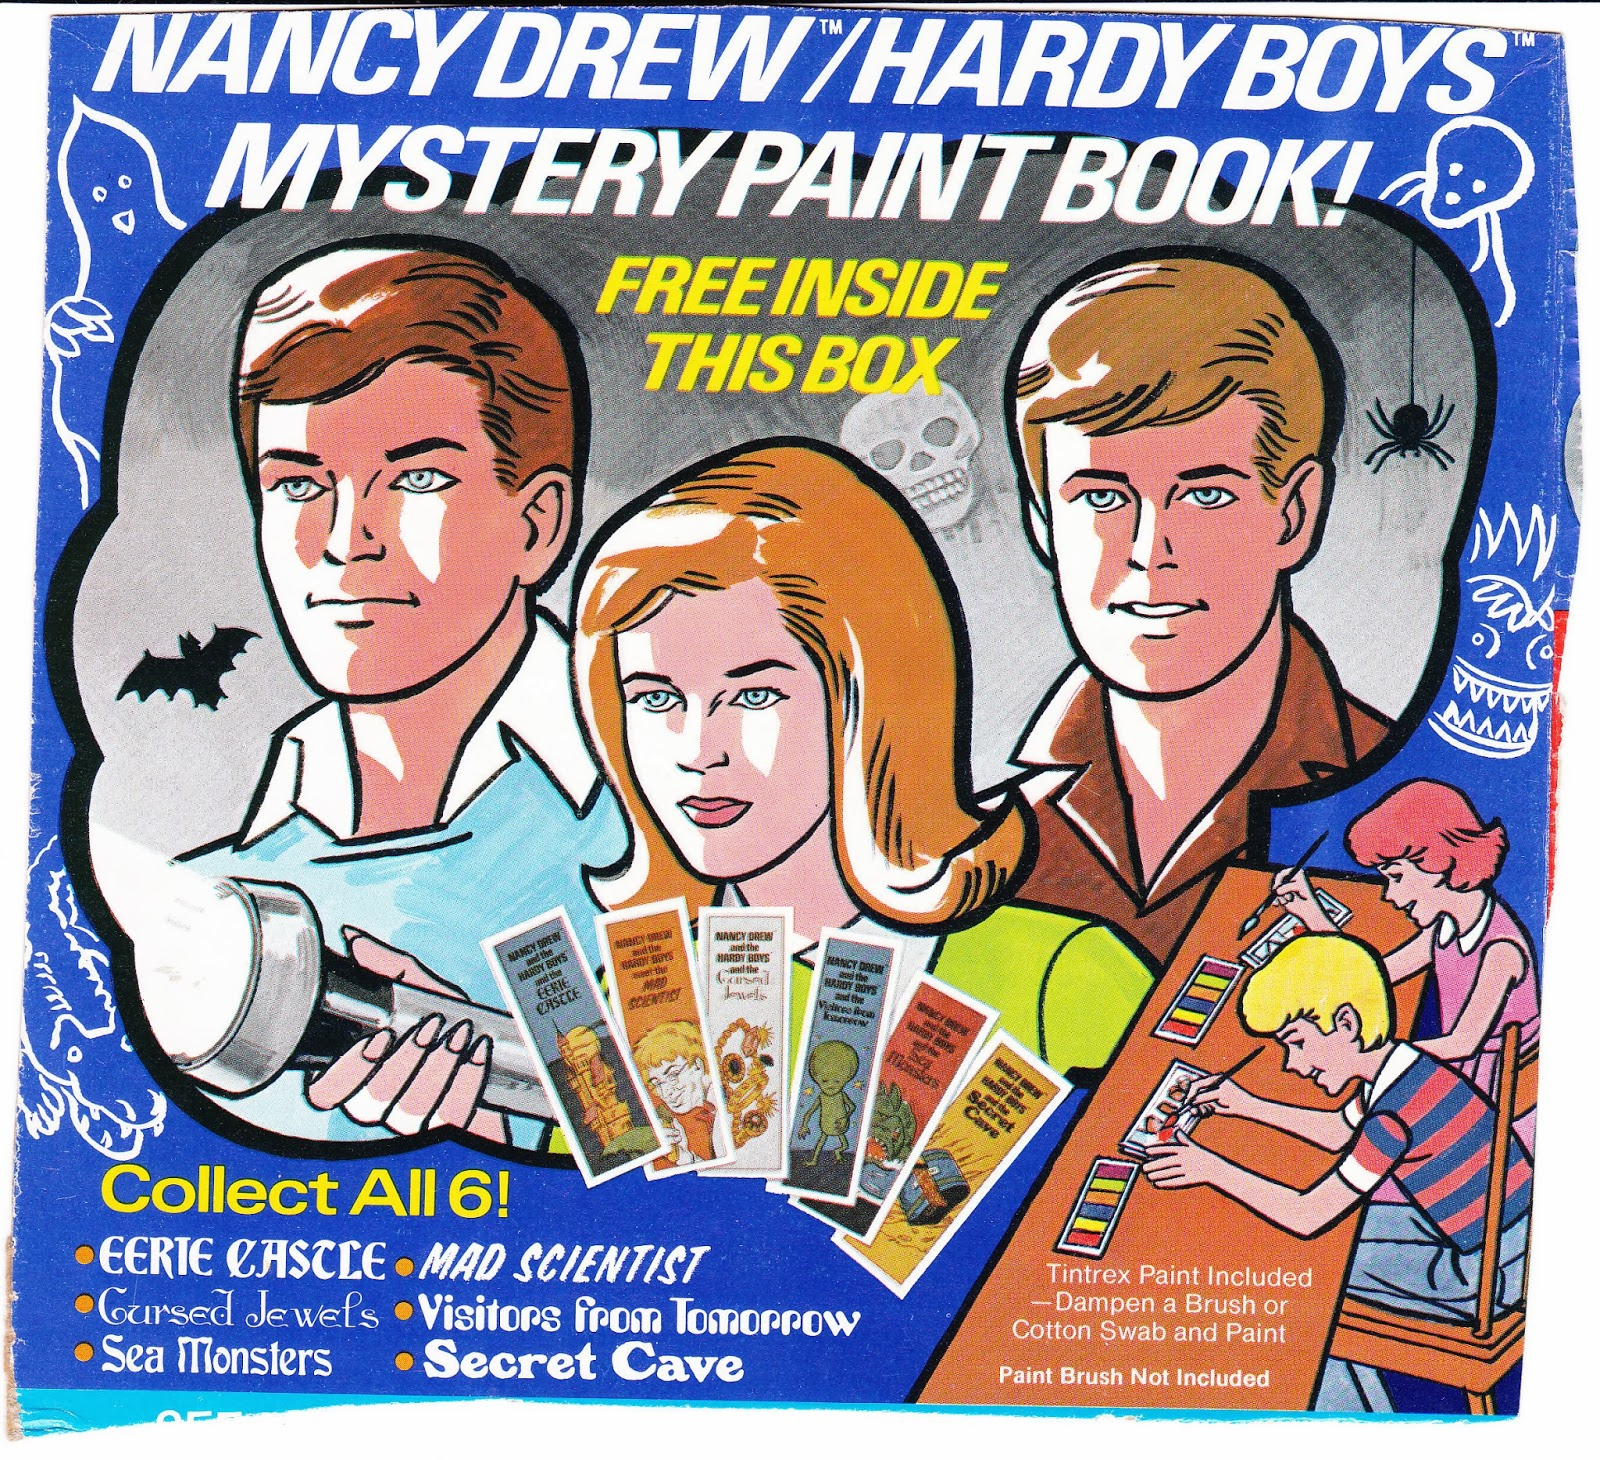 nancy drew and hardy boy books pdf